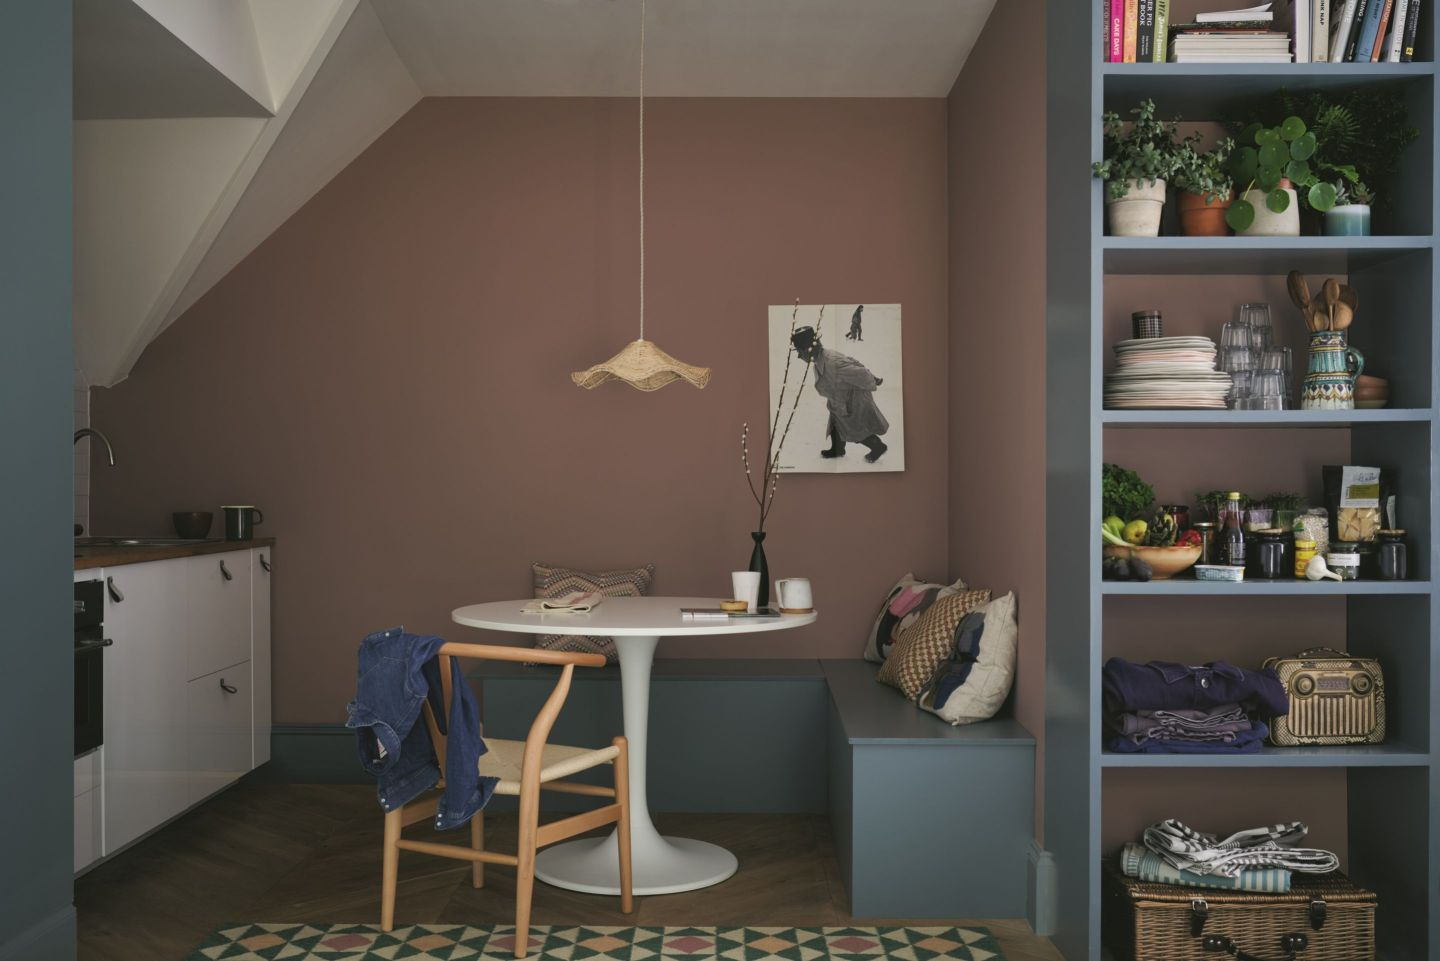 FarrowBall_3251525_FarrowBallNewColours2018.jpg-1440x961 Paint Inspiration: 20 Colorful Rooms We Love